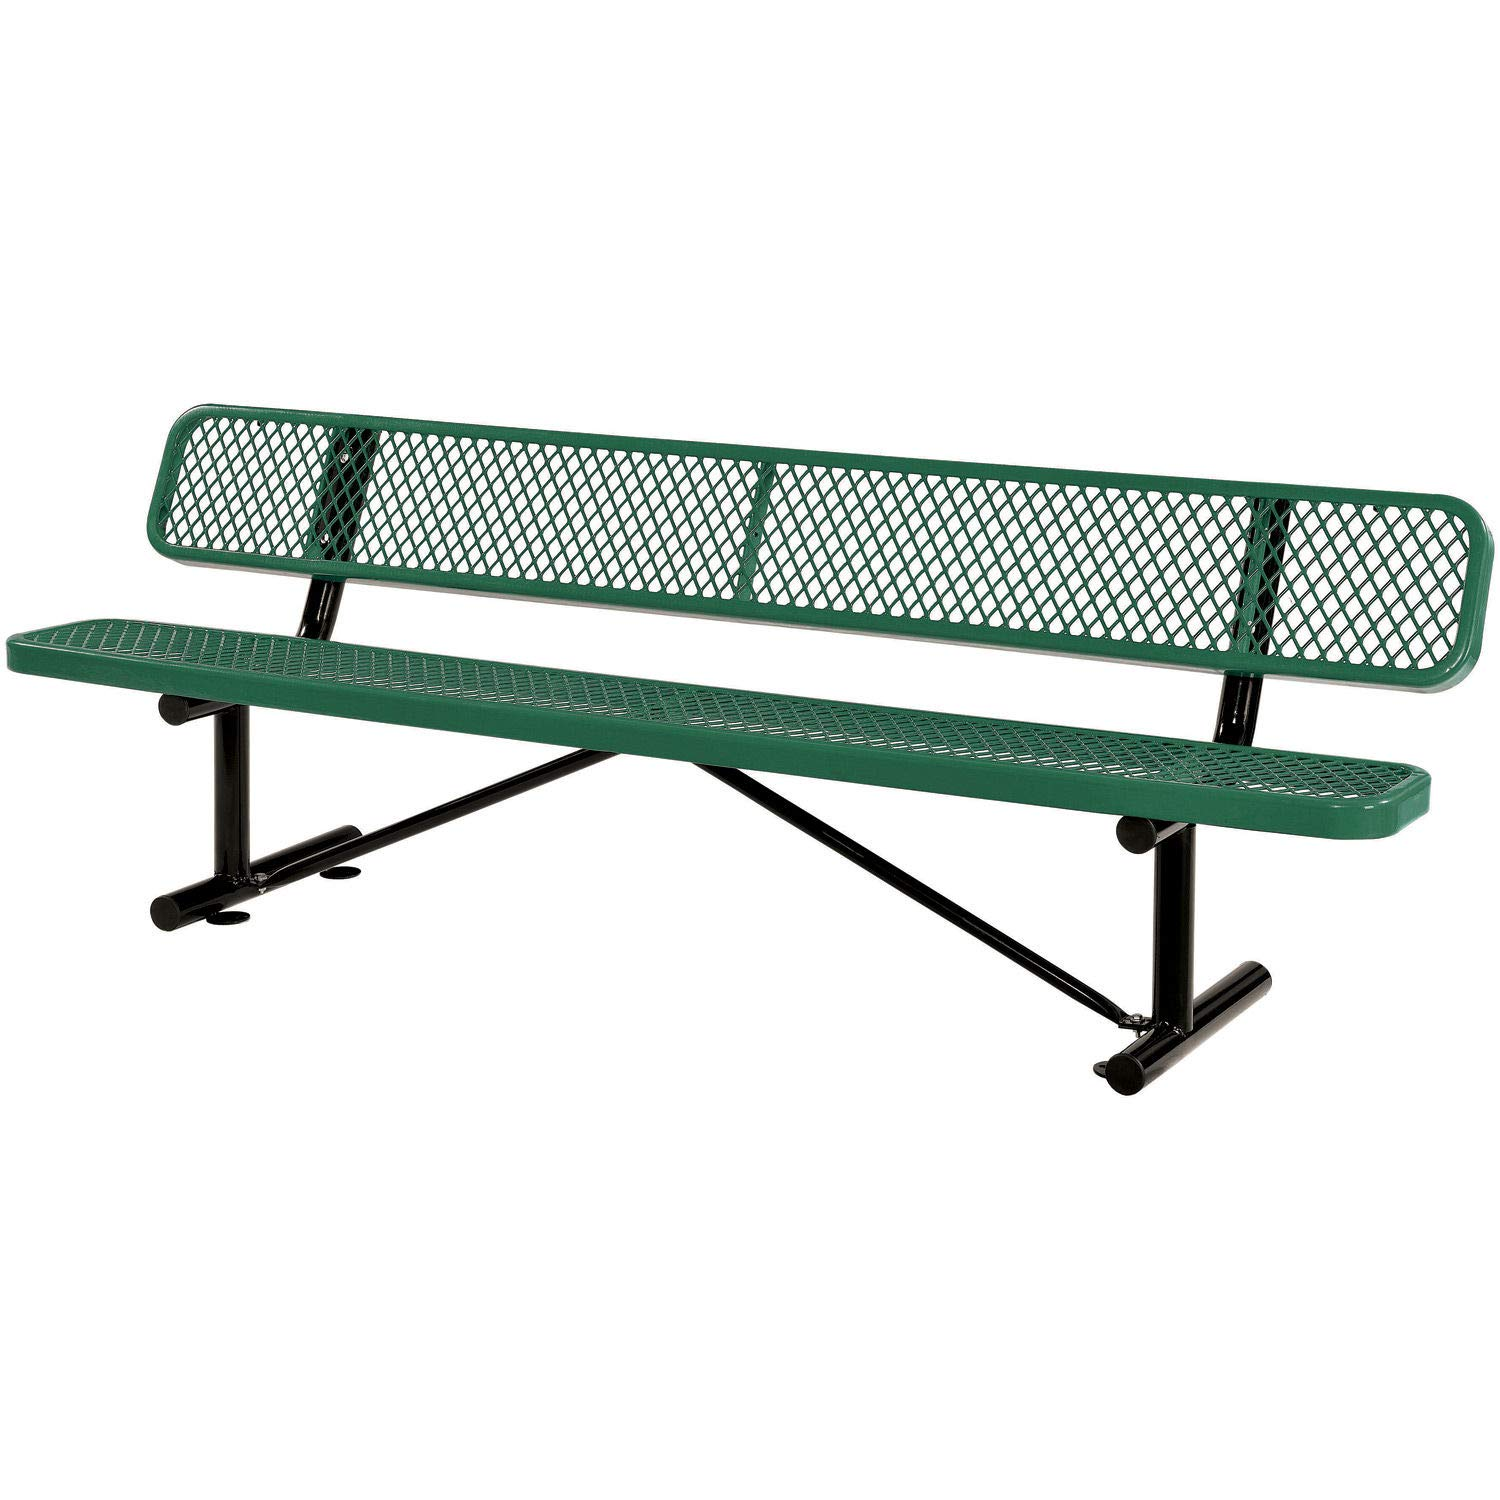 96 Bench with Back Rest, Green